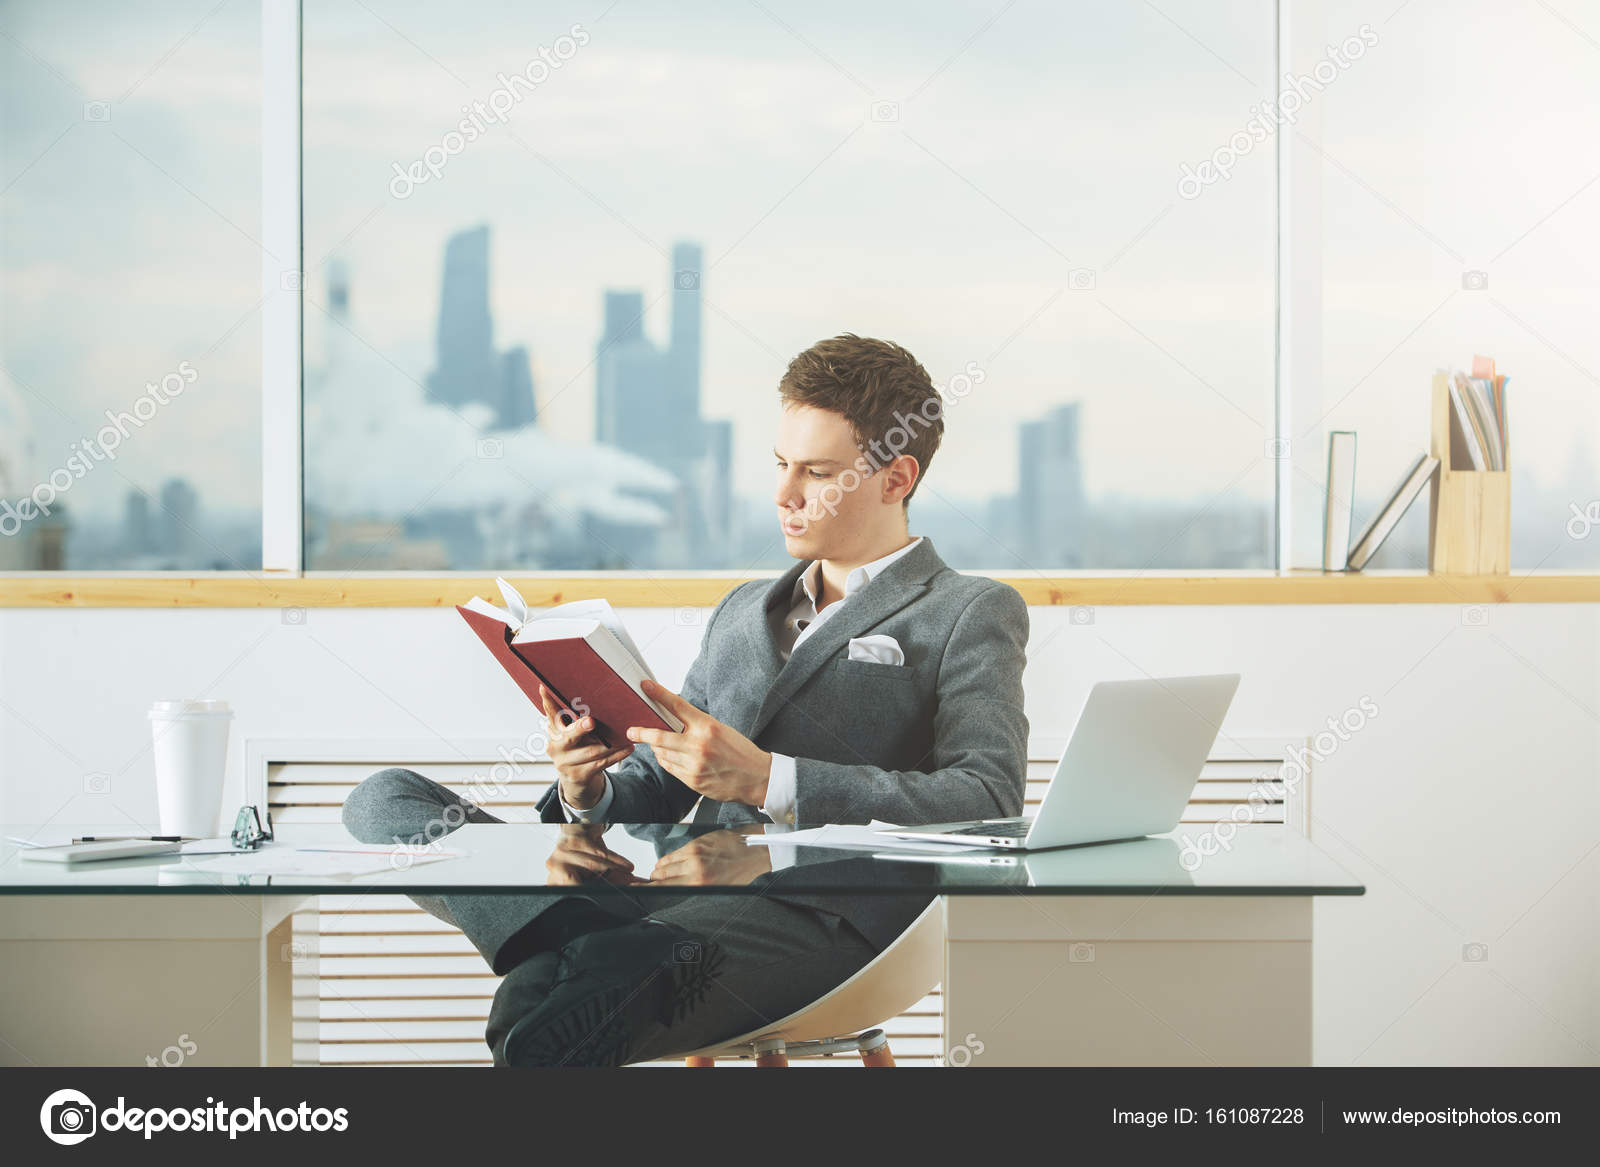 european cup office coffee. Focused Young European Student Reading Book At Desktop With Laptop, Coffee Cup And Other Items Office S